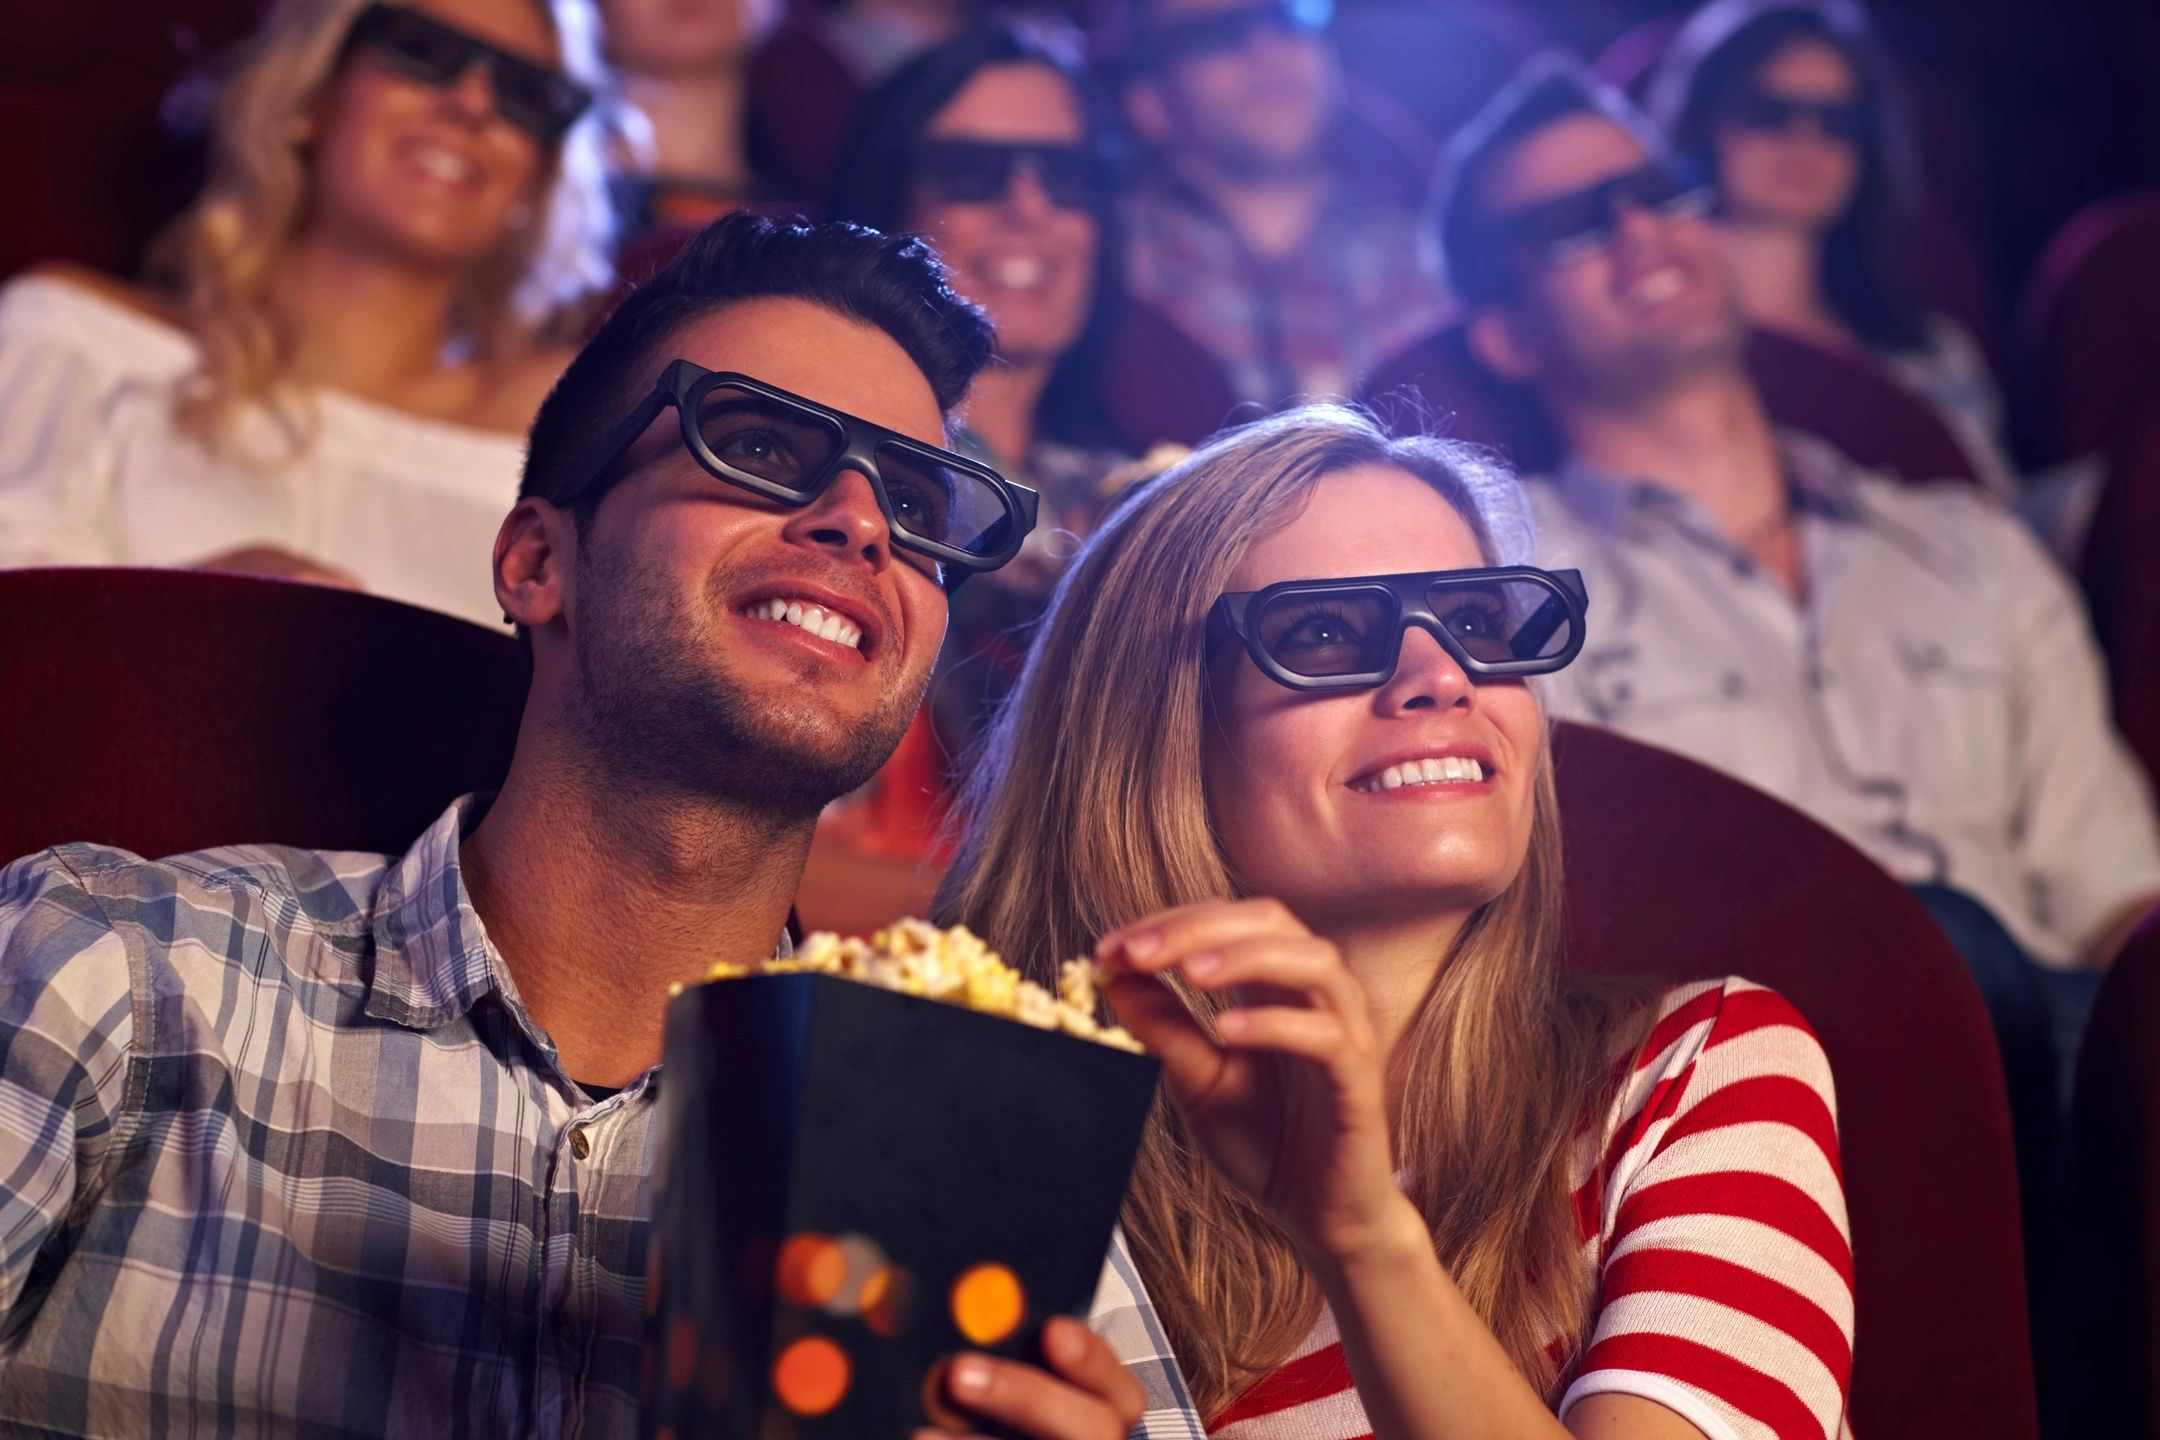 The impact of modern technology on entertainment